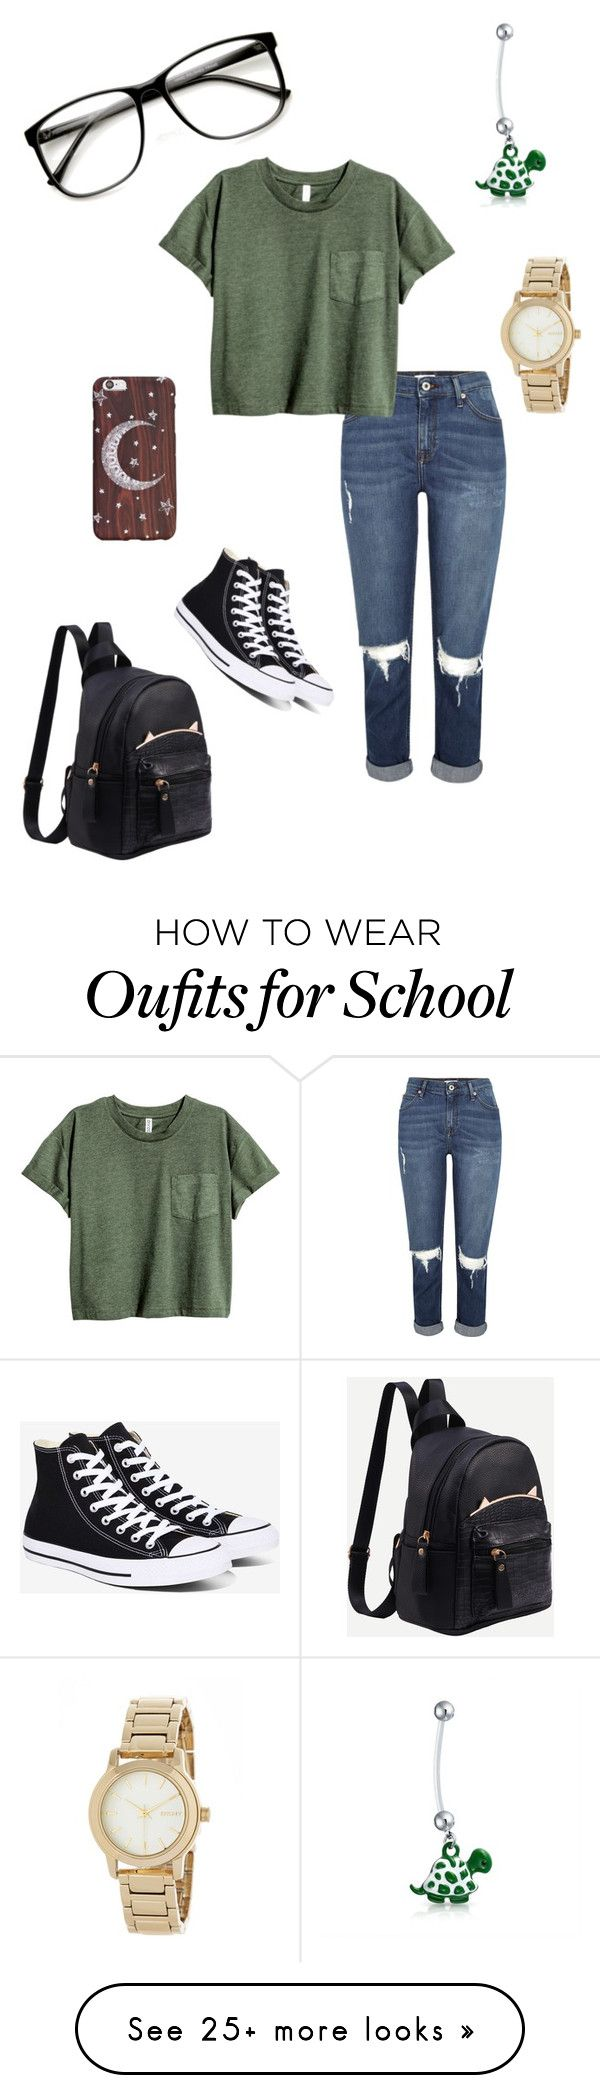 Back to school by jazlynvanessa on Polyvore featuring Converse, Bling Jewelry, DKNY and ZeroUV